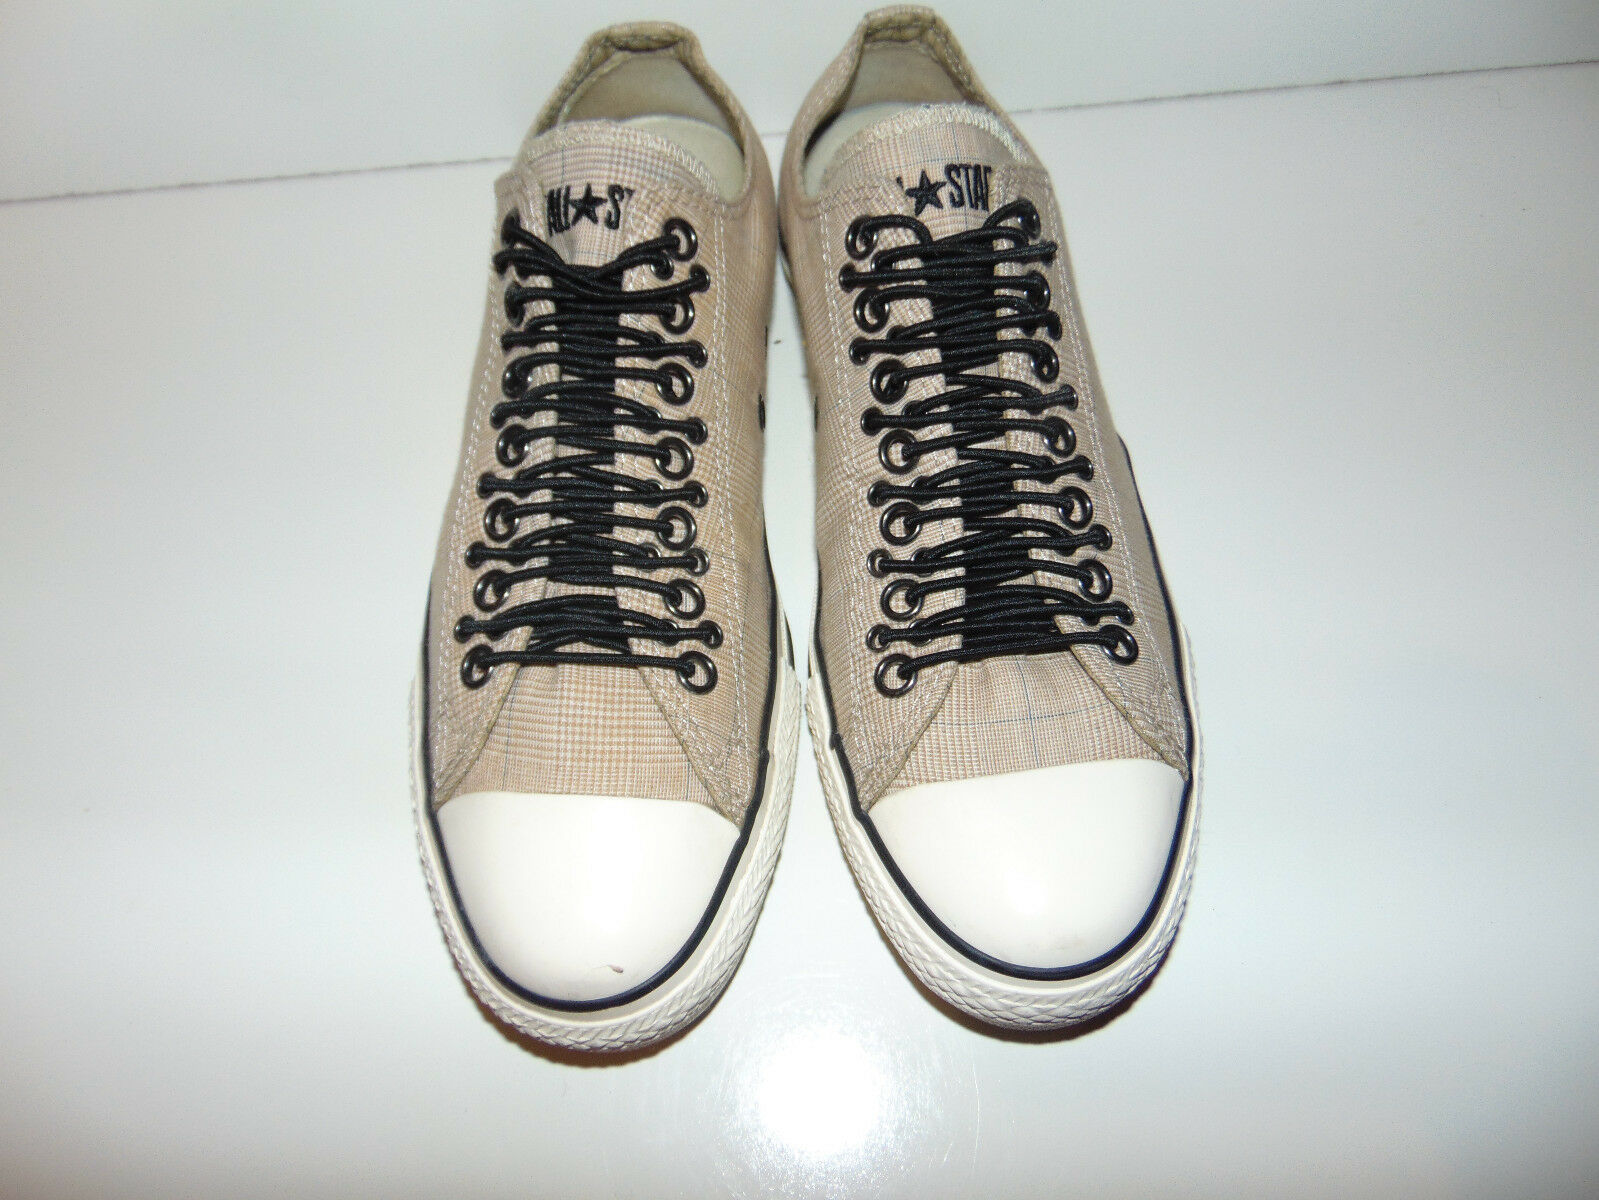 CONVERSE ALL STAR MENS 9 Womens 11 BUNGEE CORD NICE